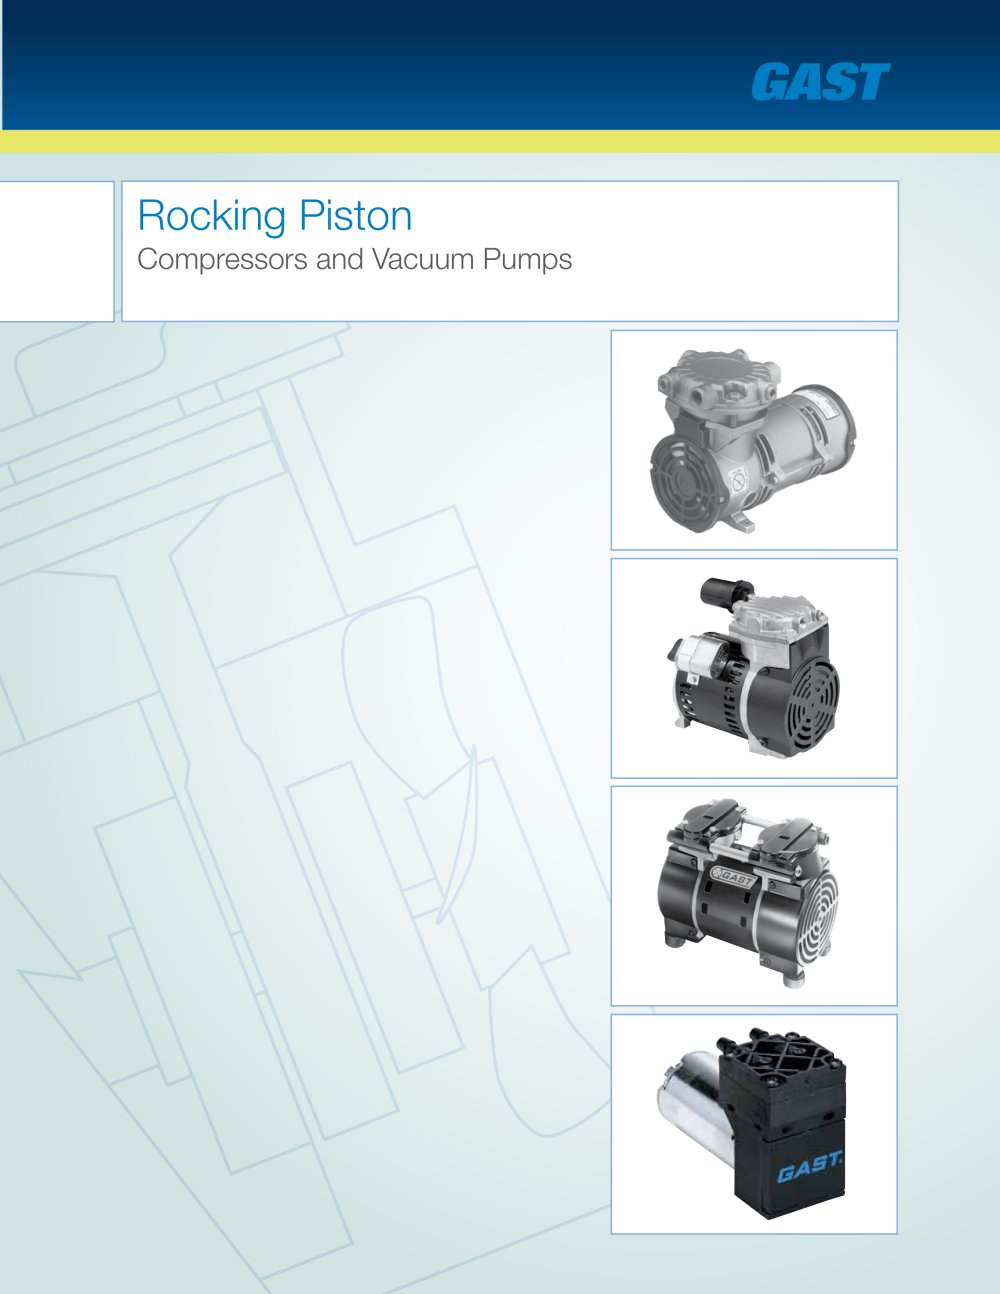 Gast Vacuum Pumps Wiring Diagram Library Rocking Piston Compressors And 1 28 Pages